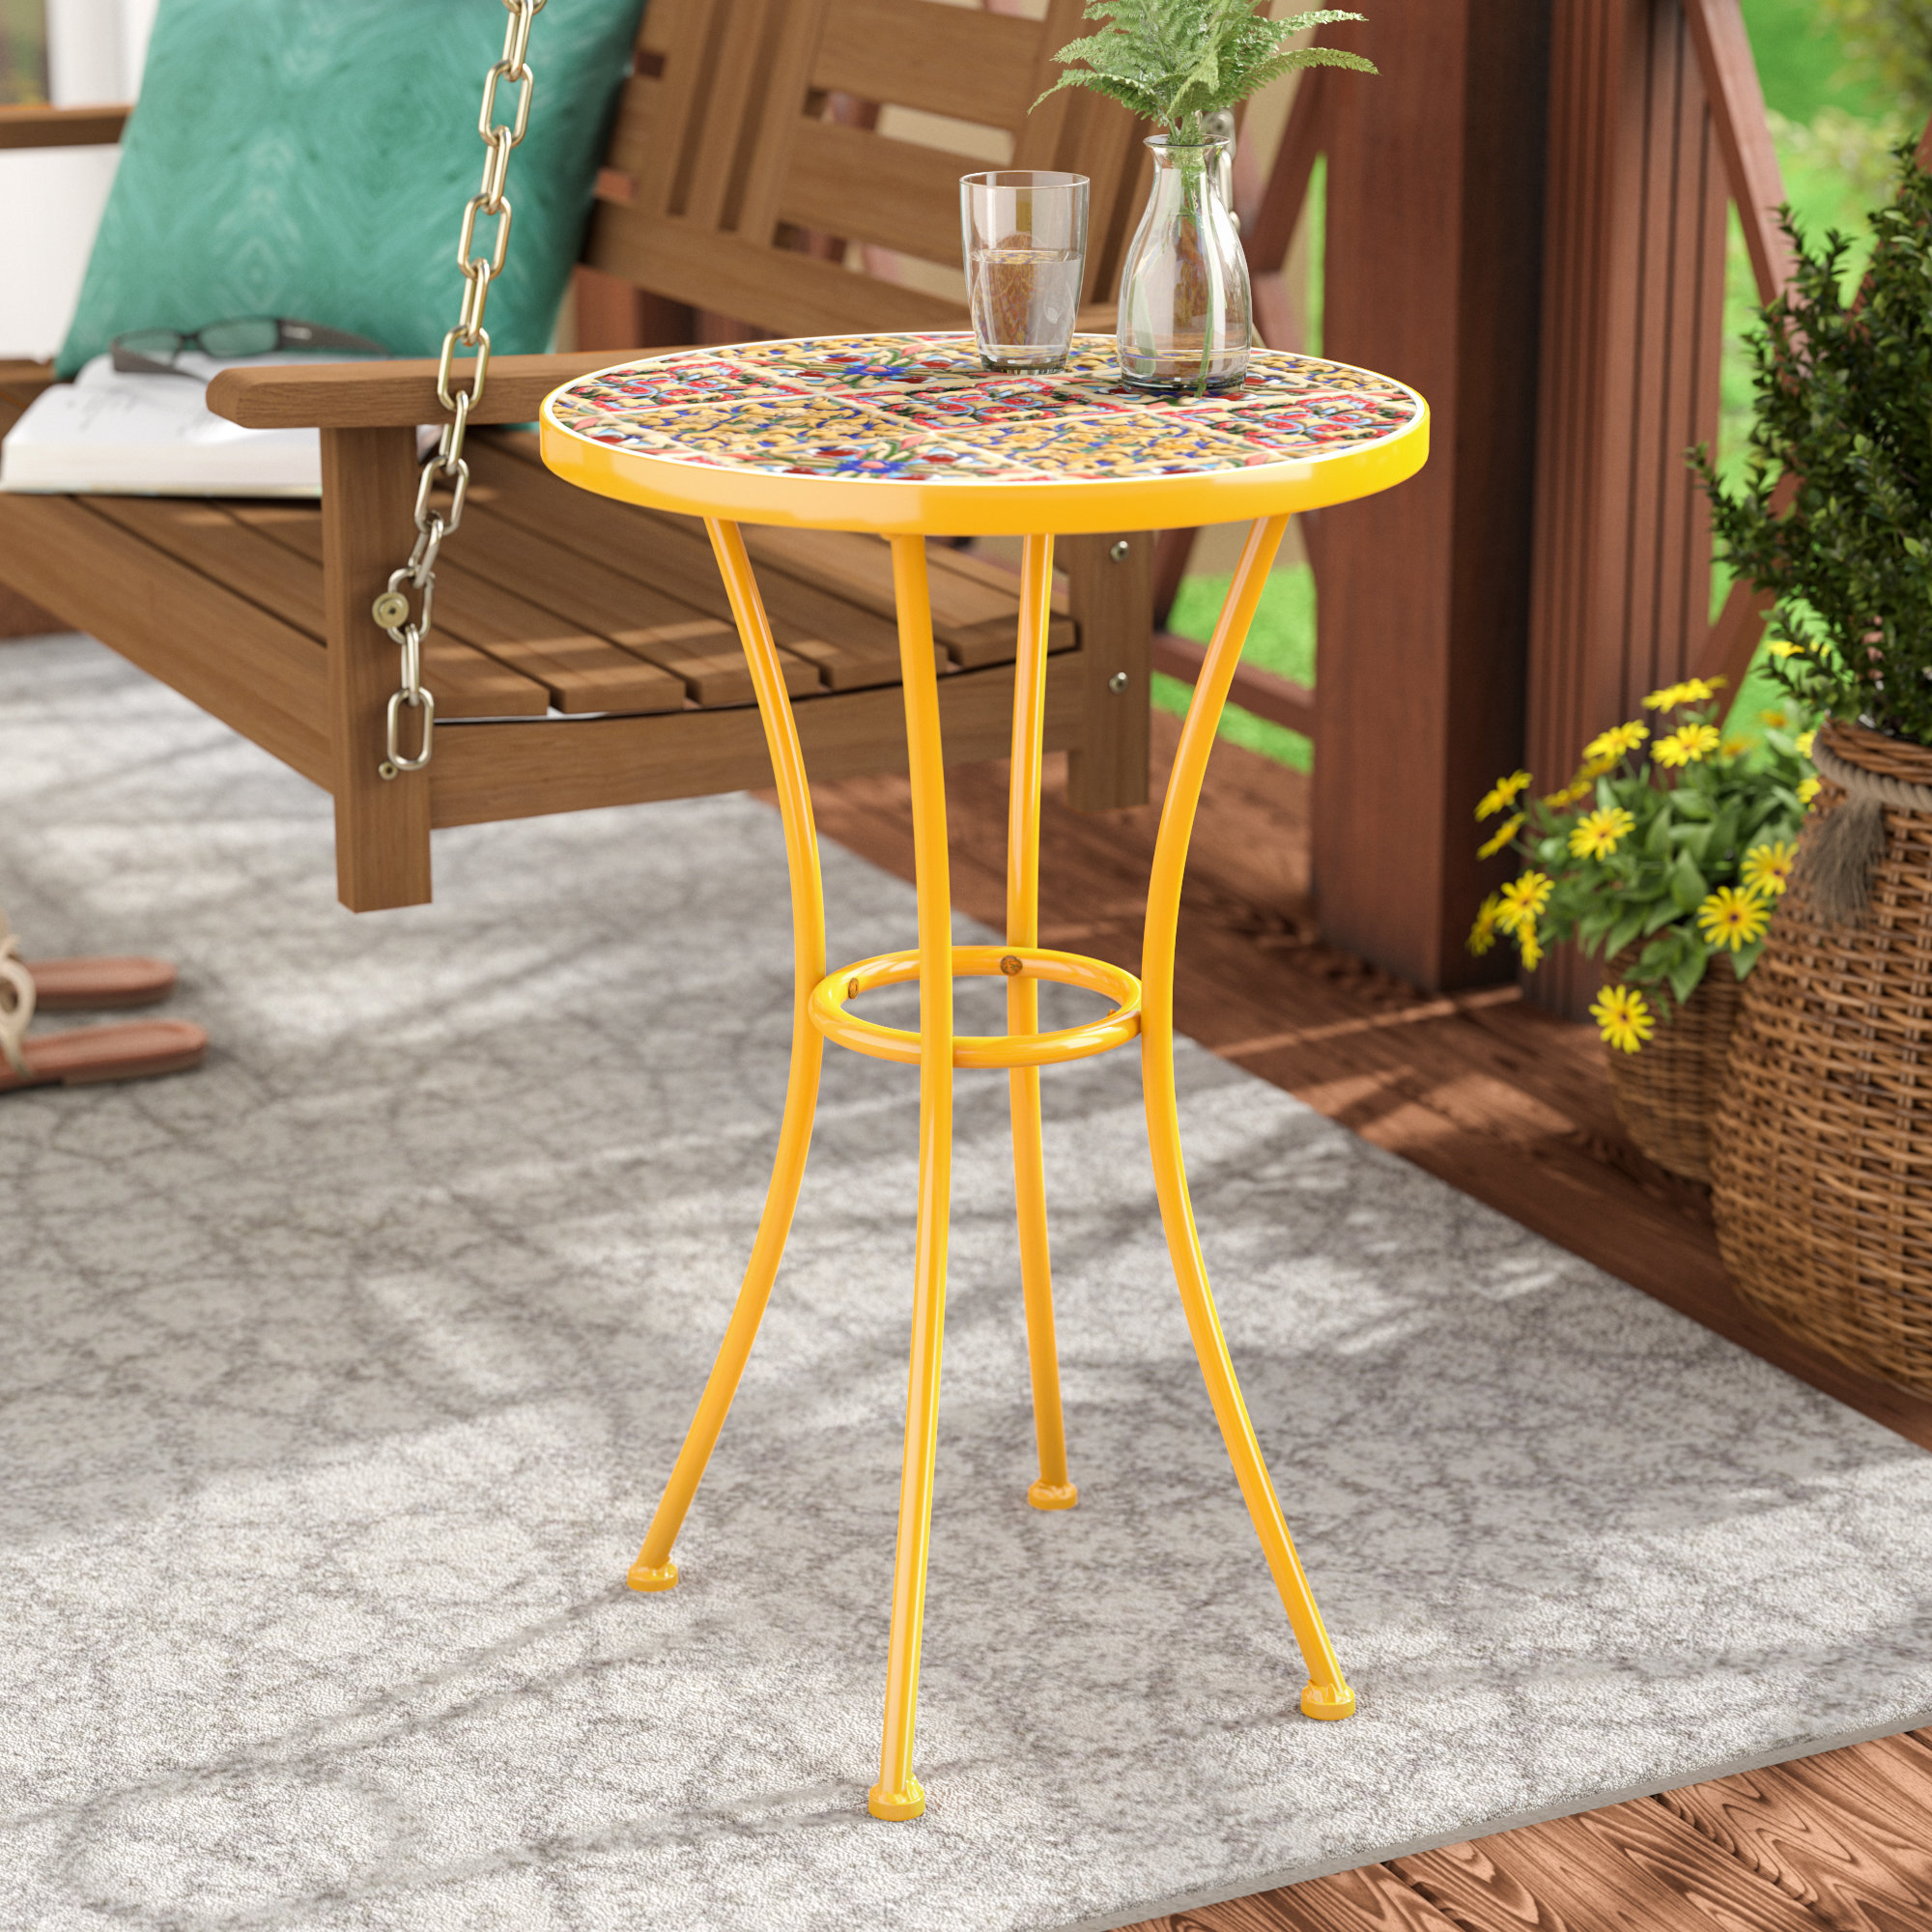 bungalow rose chantel outdoor ceramic tile side table reviews drum accent circular occasional fire pit small mini lamp circle wood coffee red nest tables white cube bedside garden